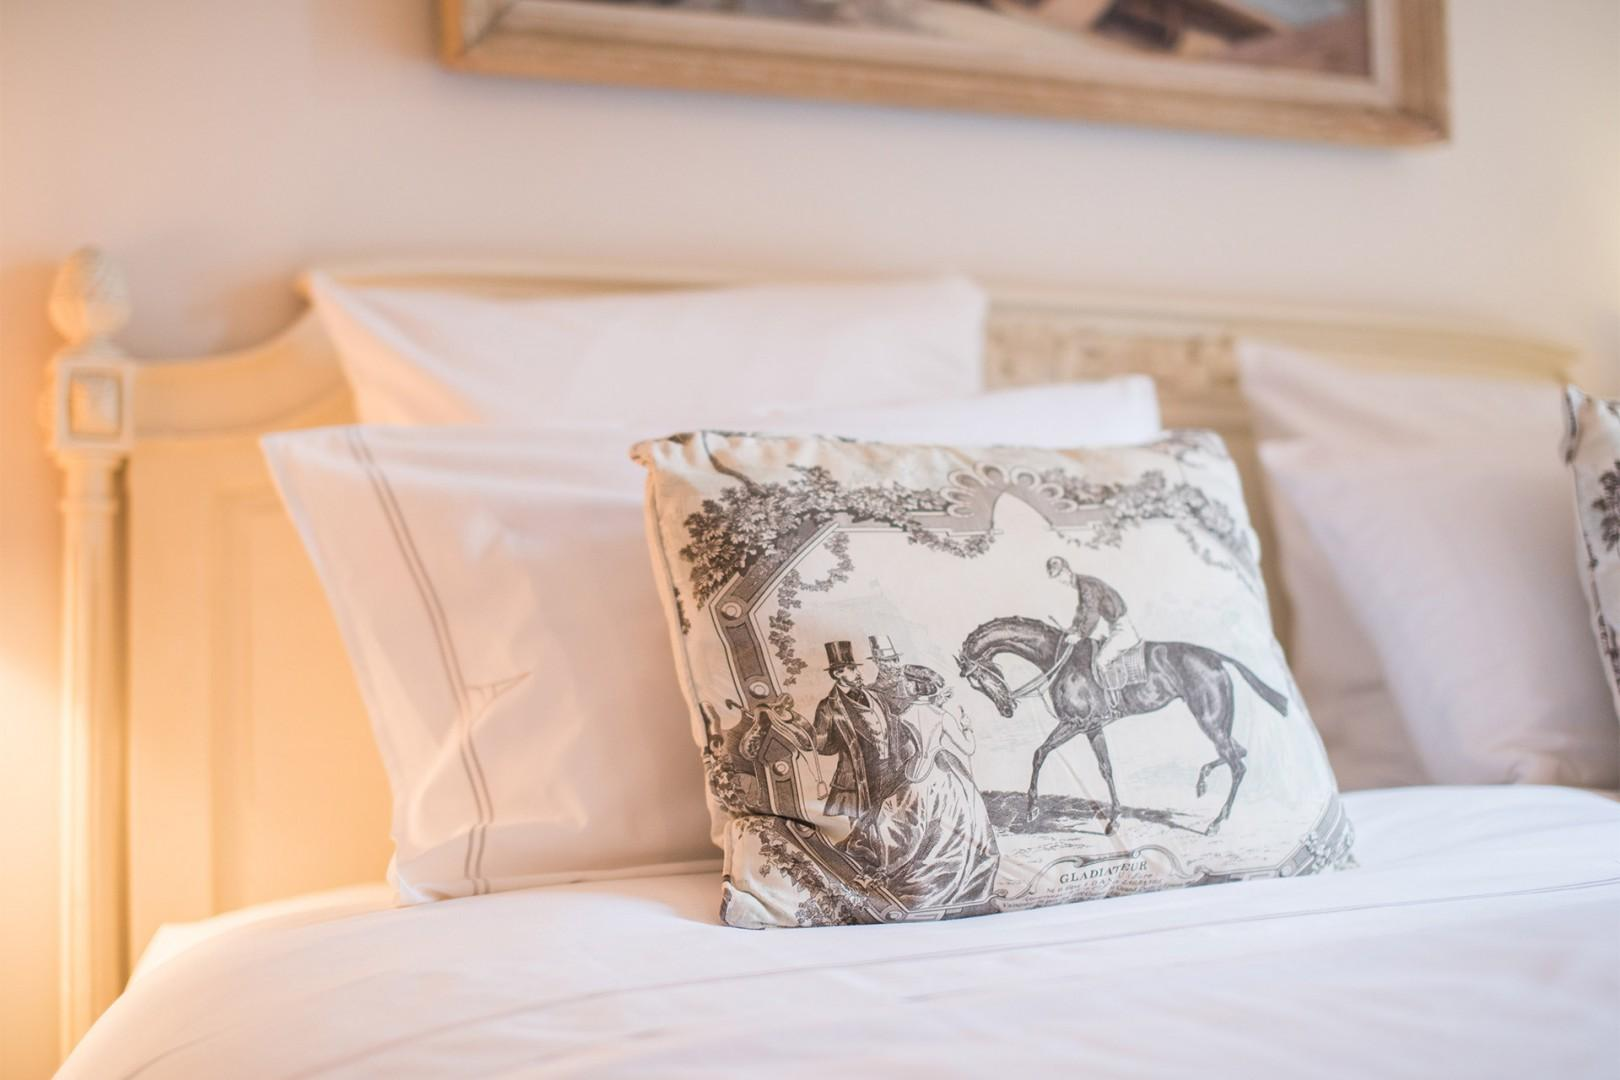 You will love sleeping in the luxurious bedding!